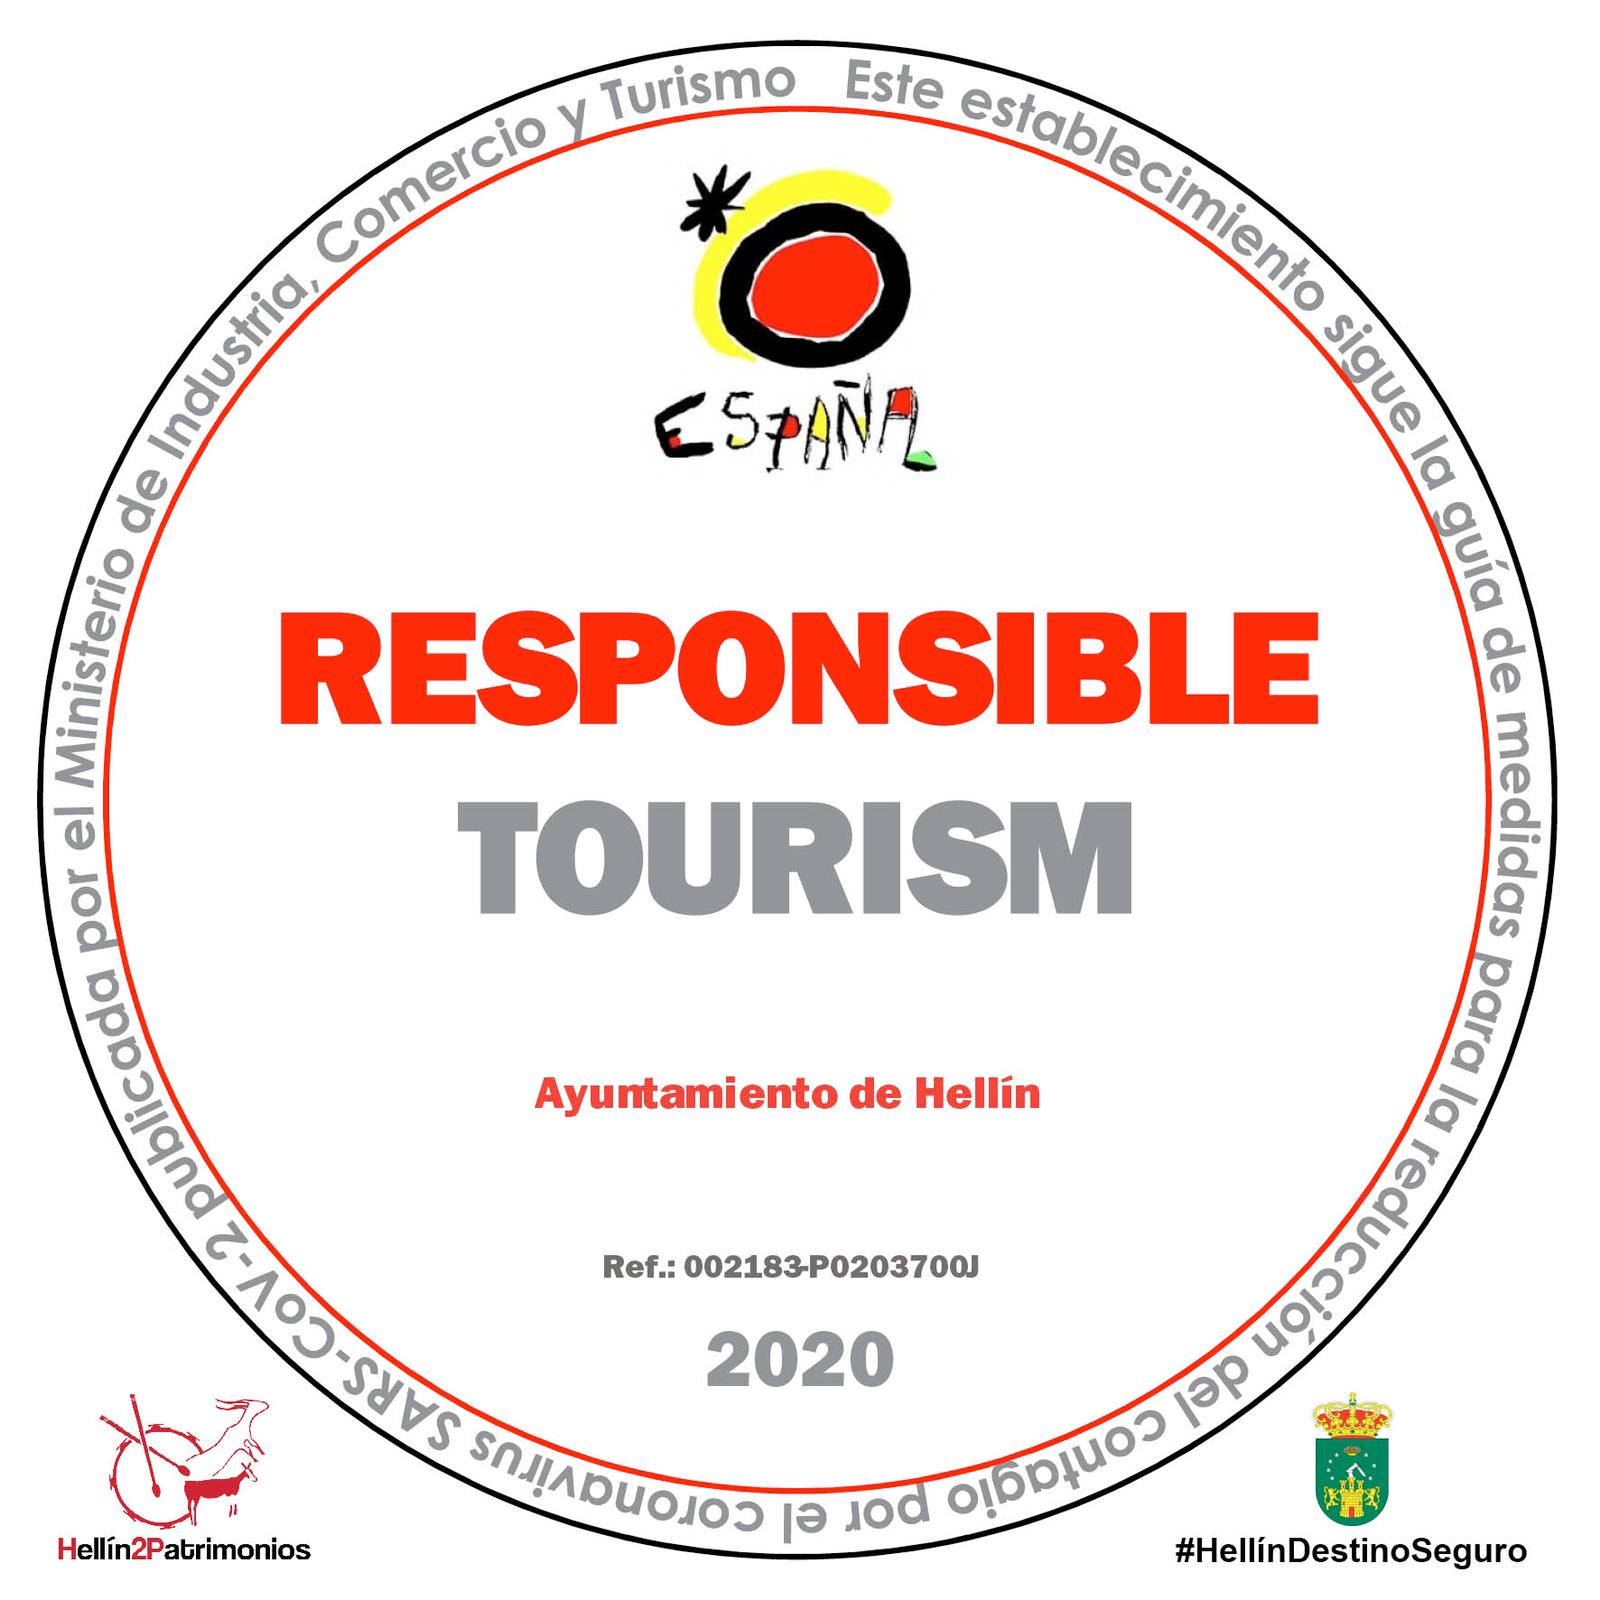 Responsible Tourism Safe Destination Seal